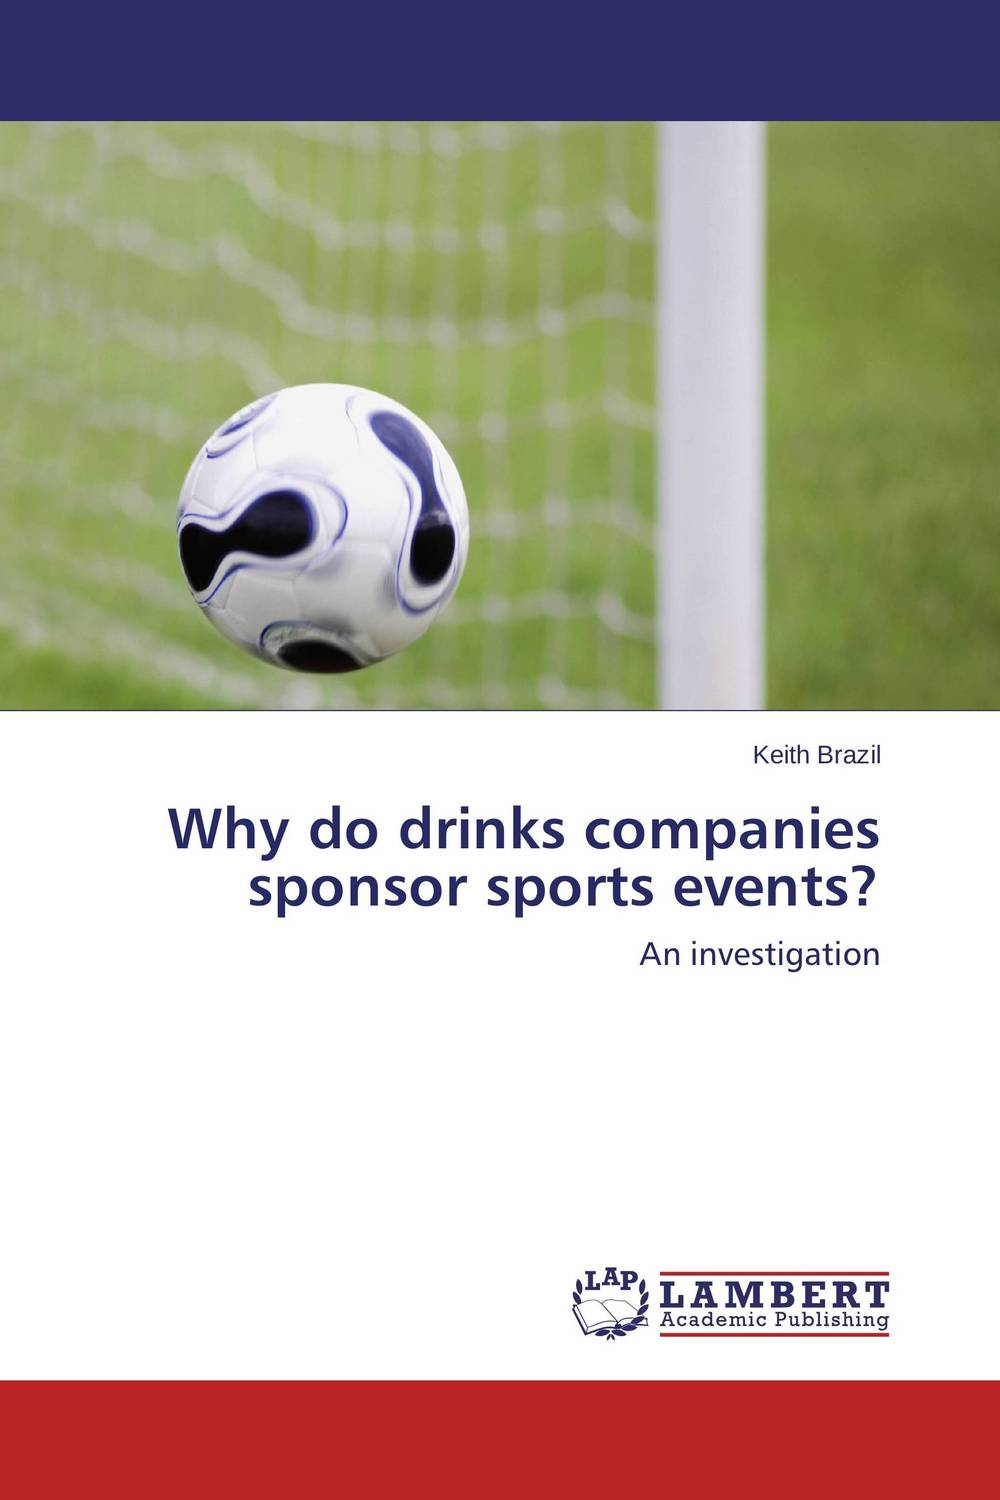 Why do drinks companies sponsor sports events? made possible by succeeding with sponsorship